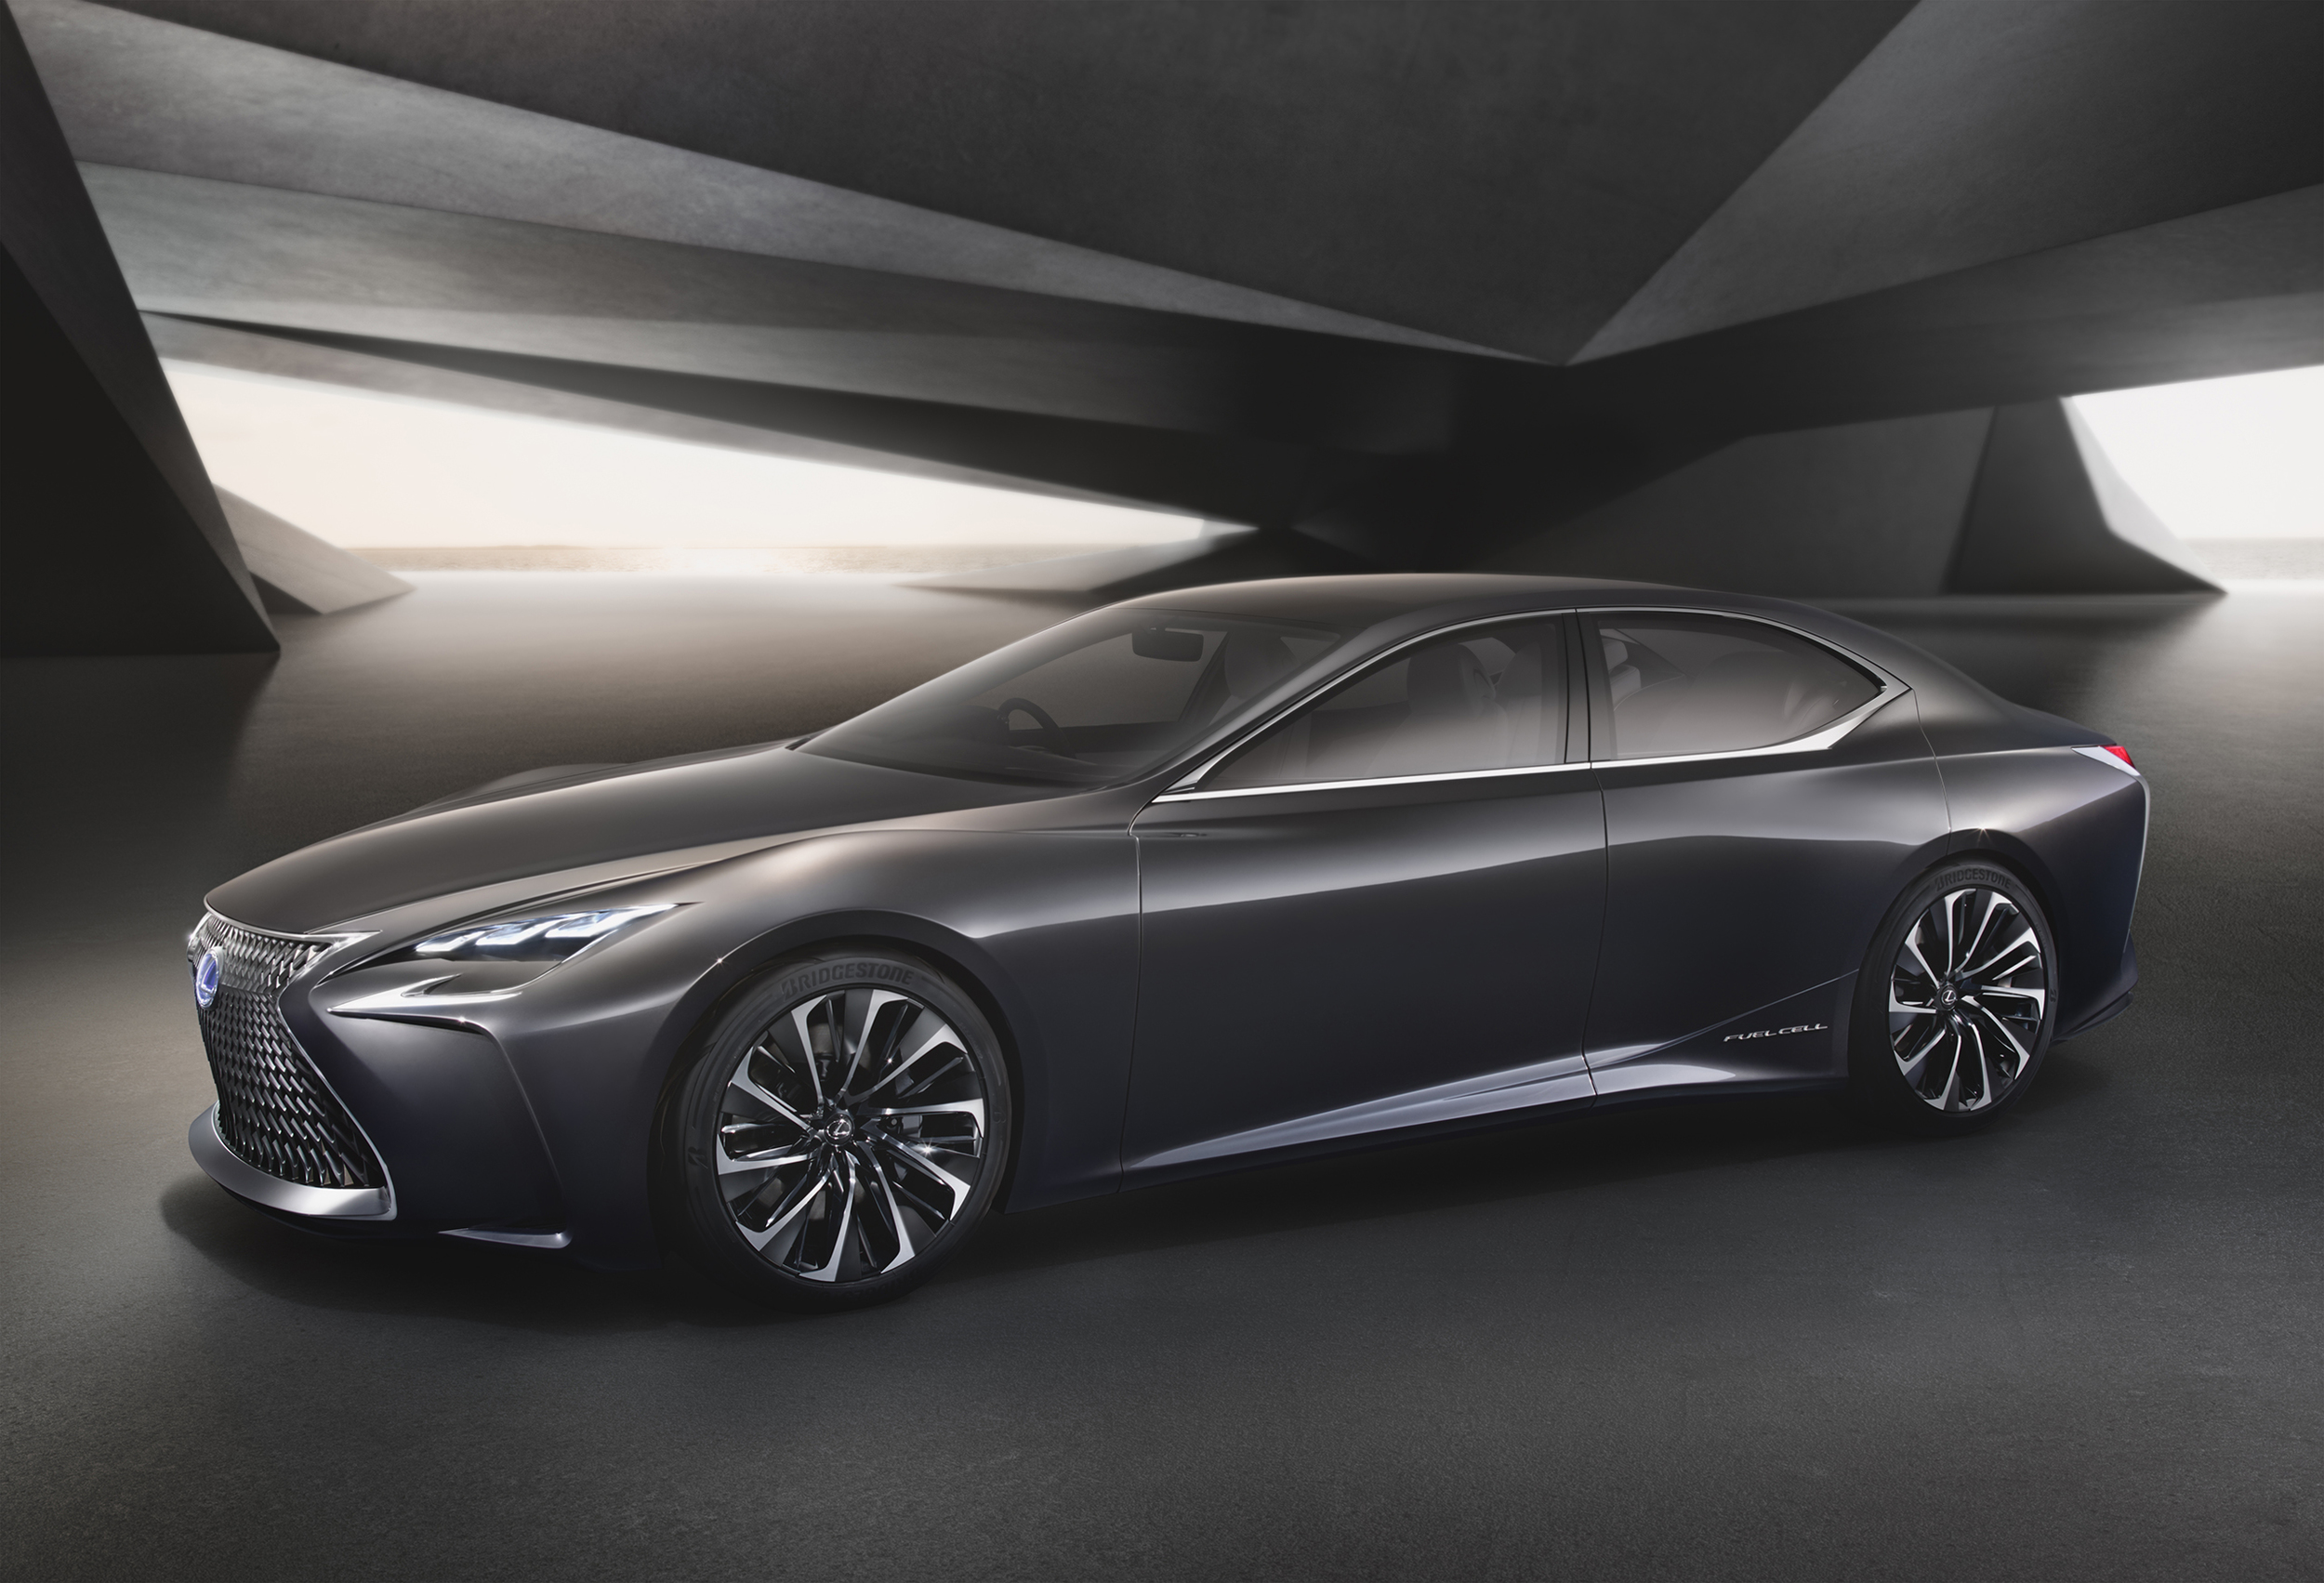 Lexus LF-FC concept revealed in Tokyo